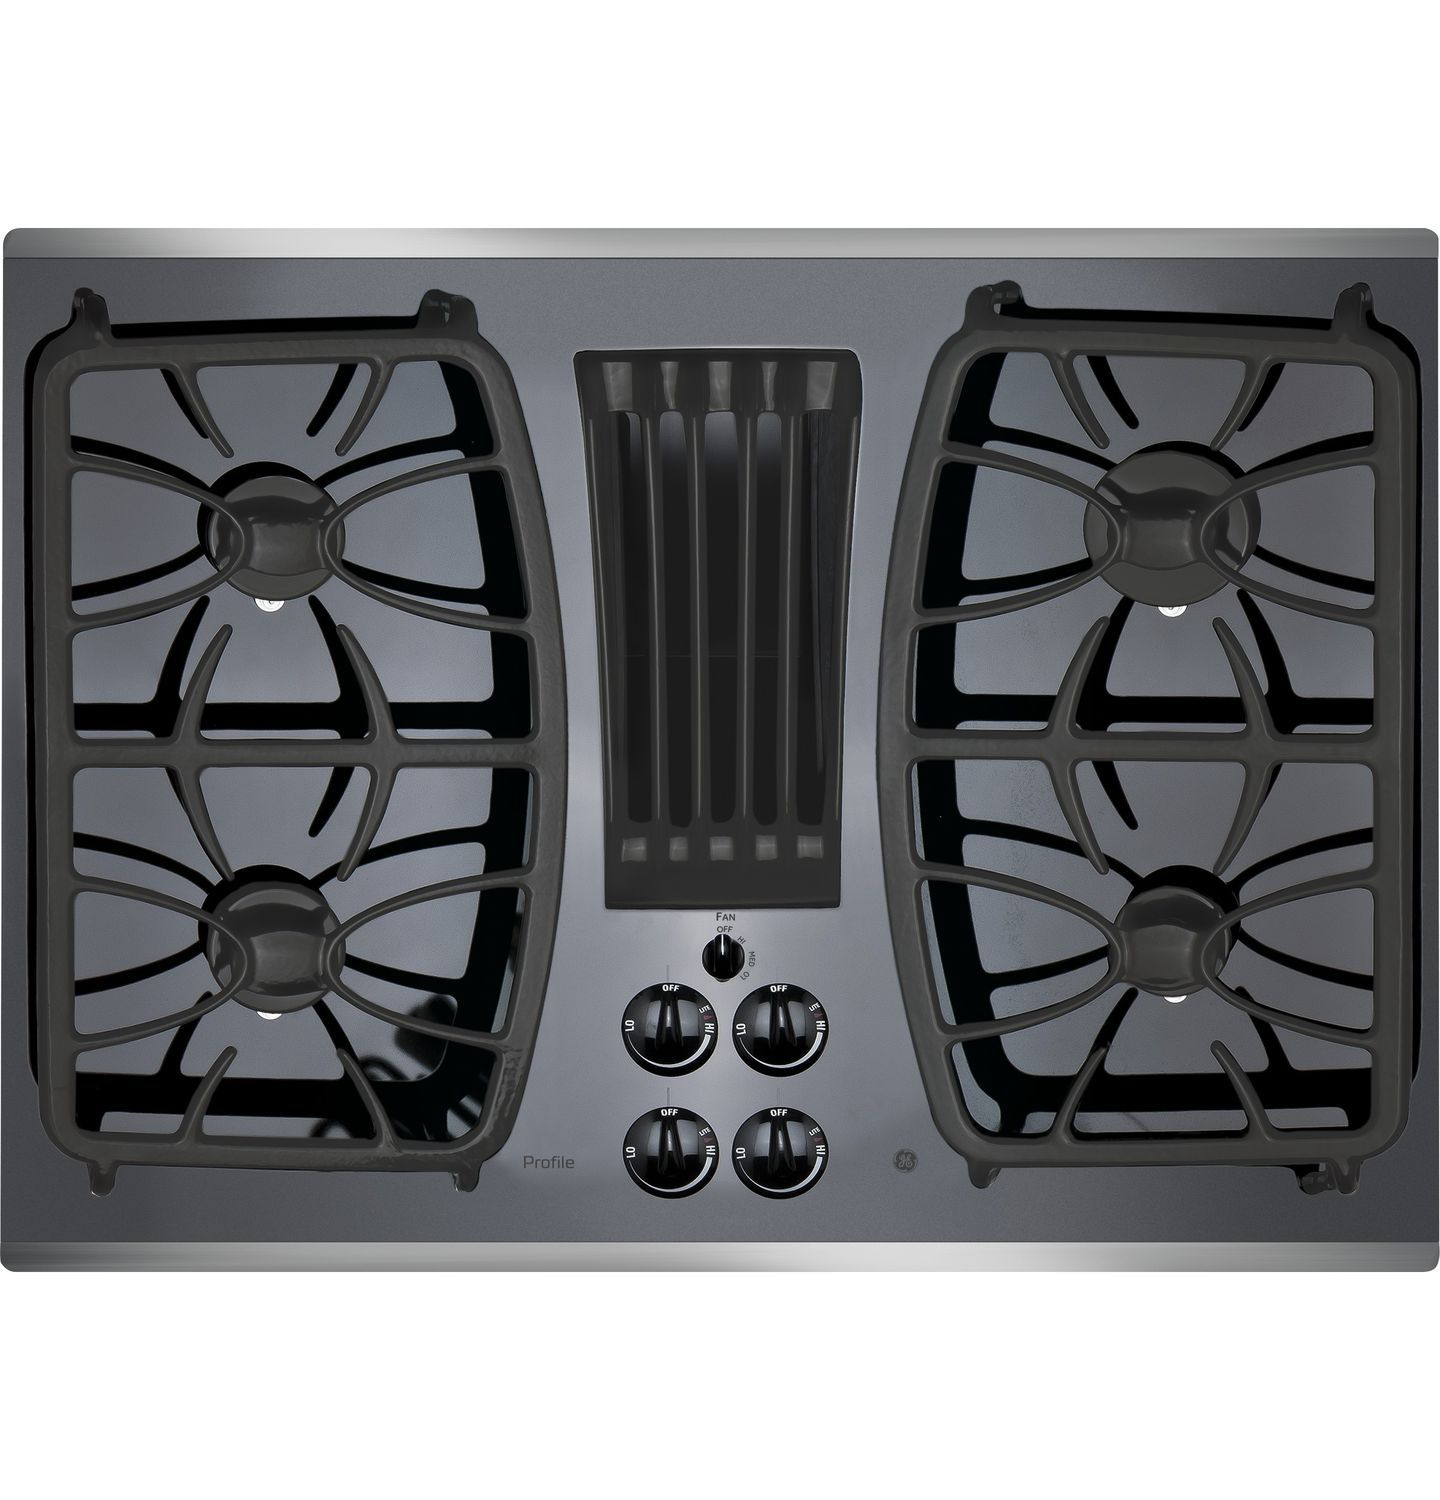 Gas Cooktop Pgp9830sjss General